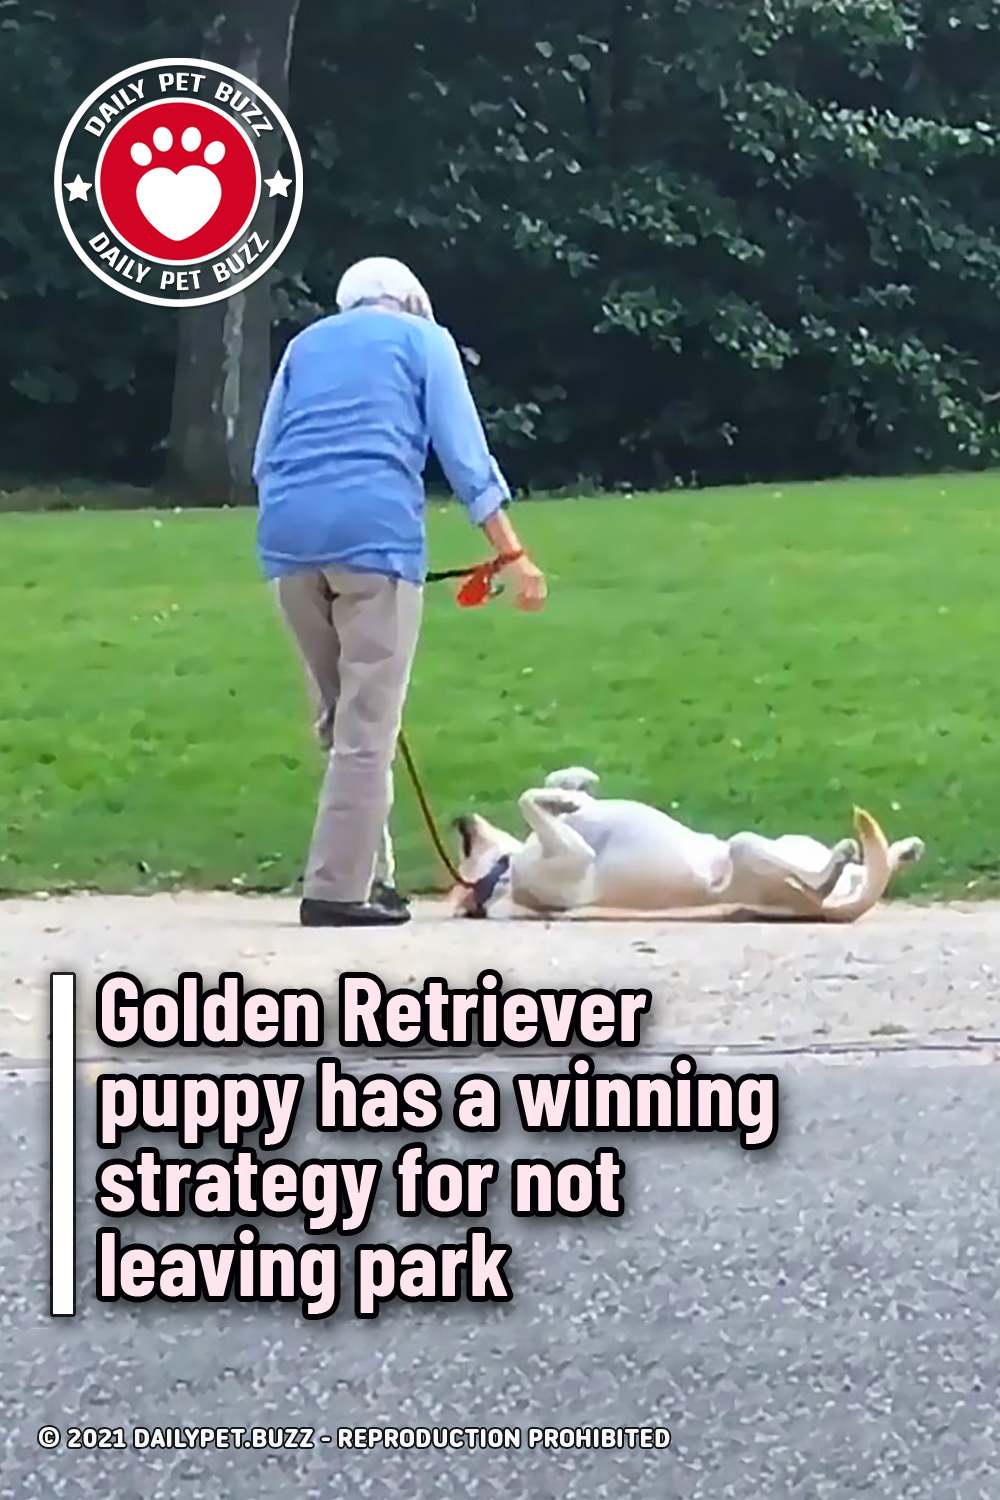 Golden Retriever puppy has a winning strategy for not leaving park